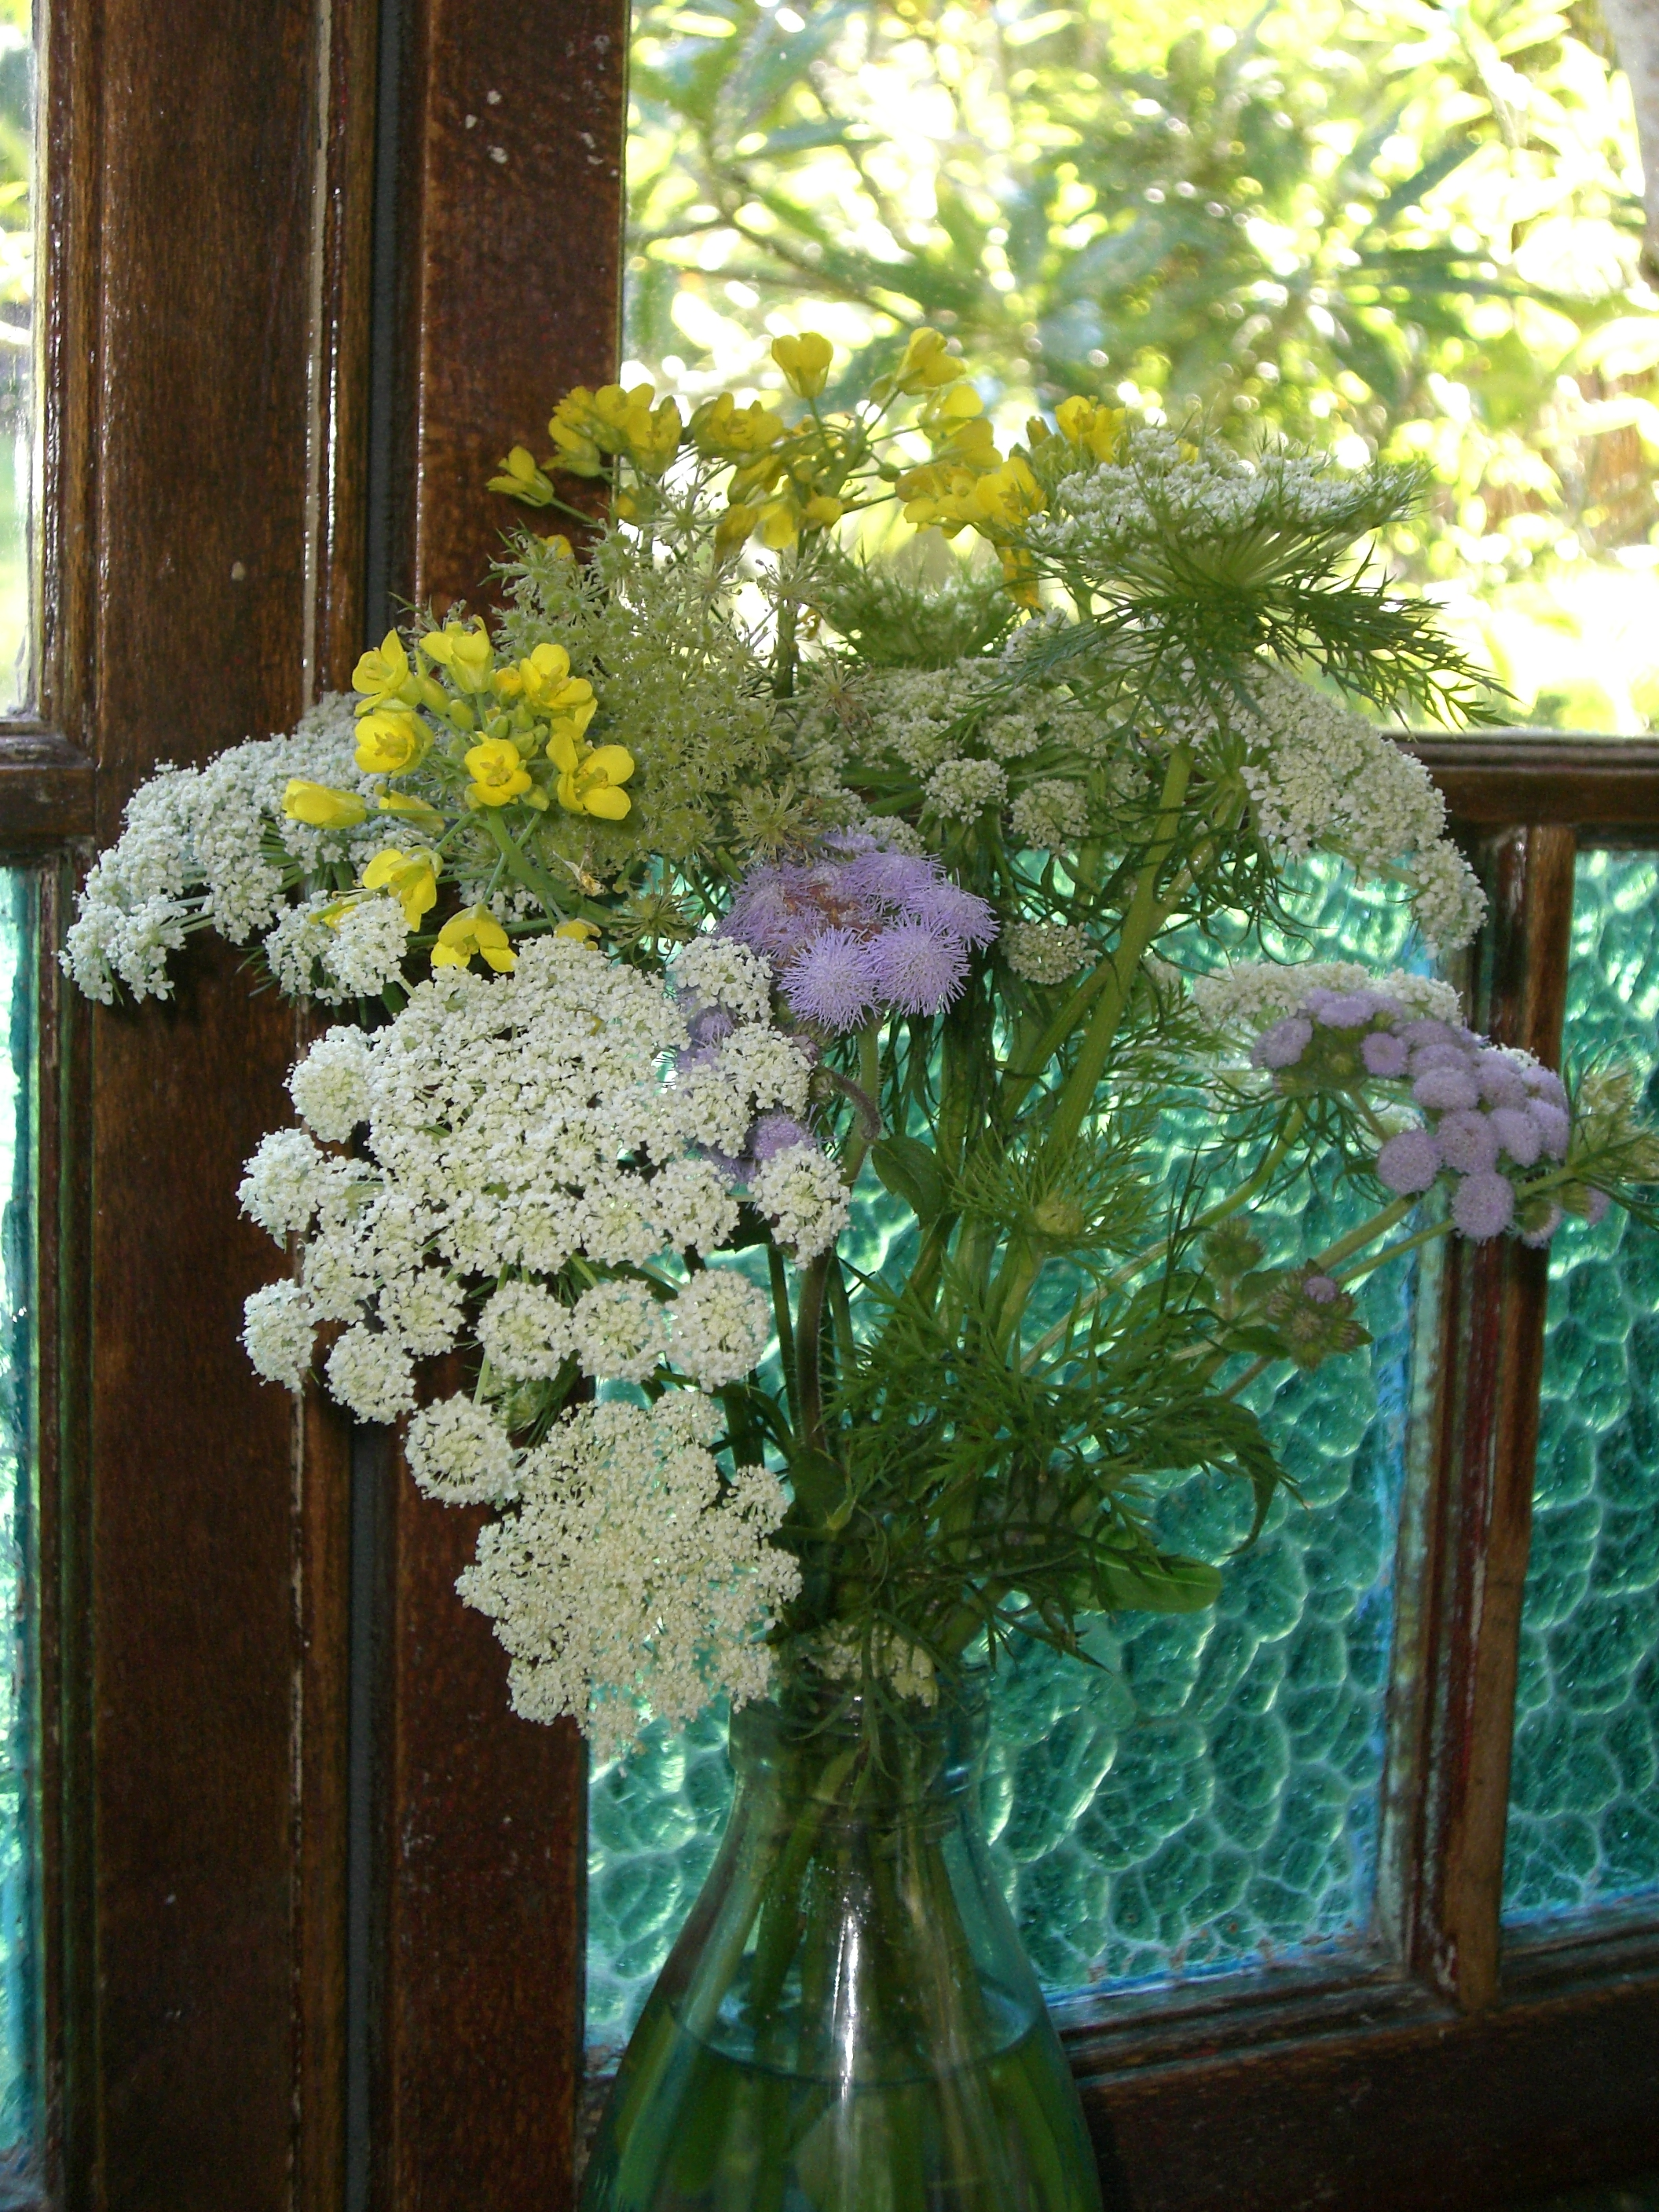 Weeds and flowering herbs and vegetables from my messy summer garden.